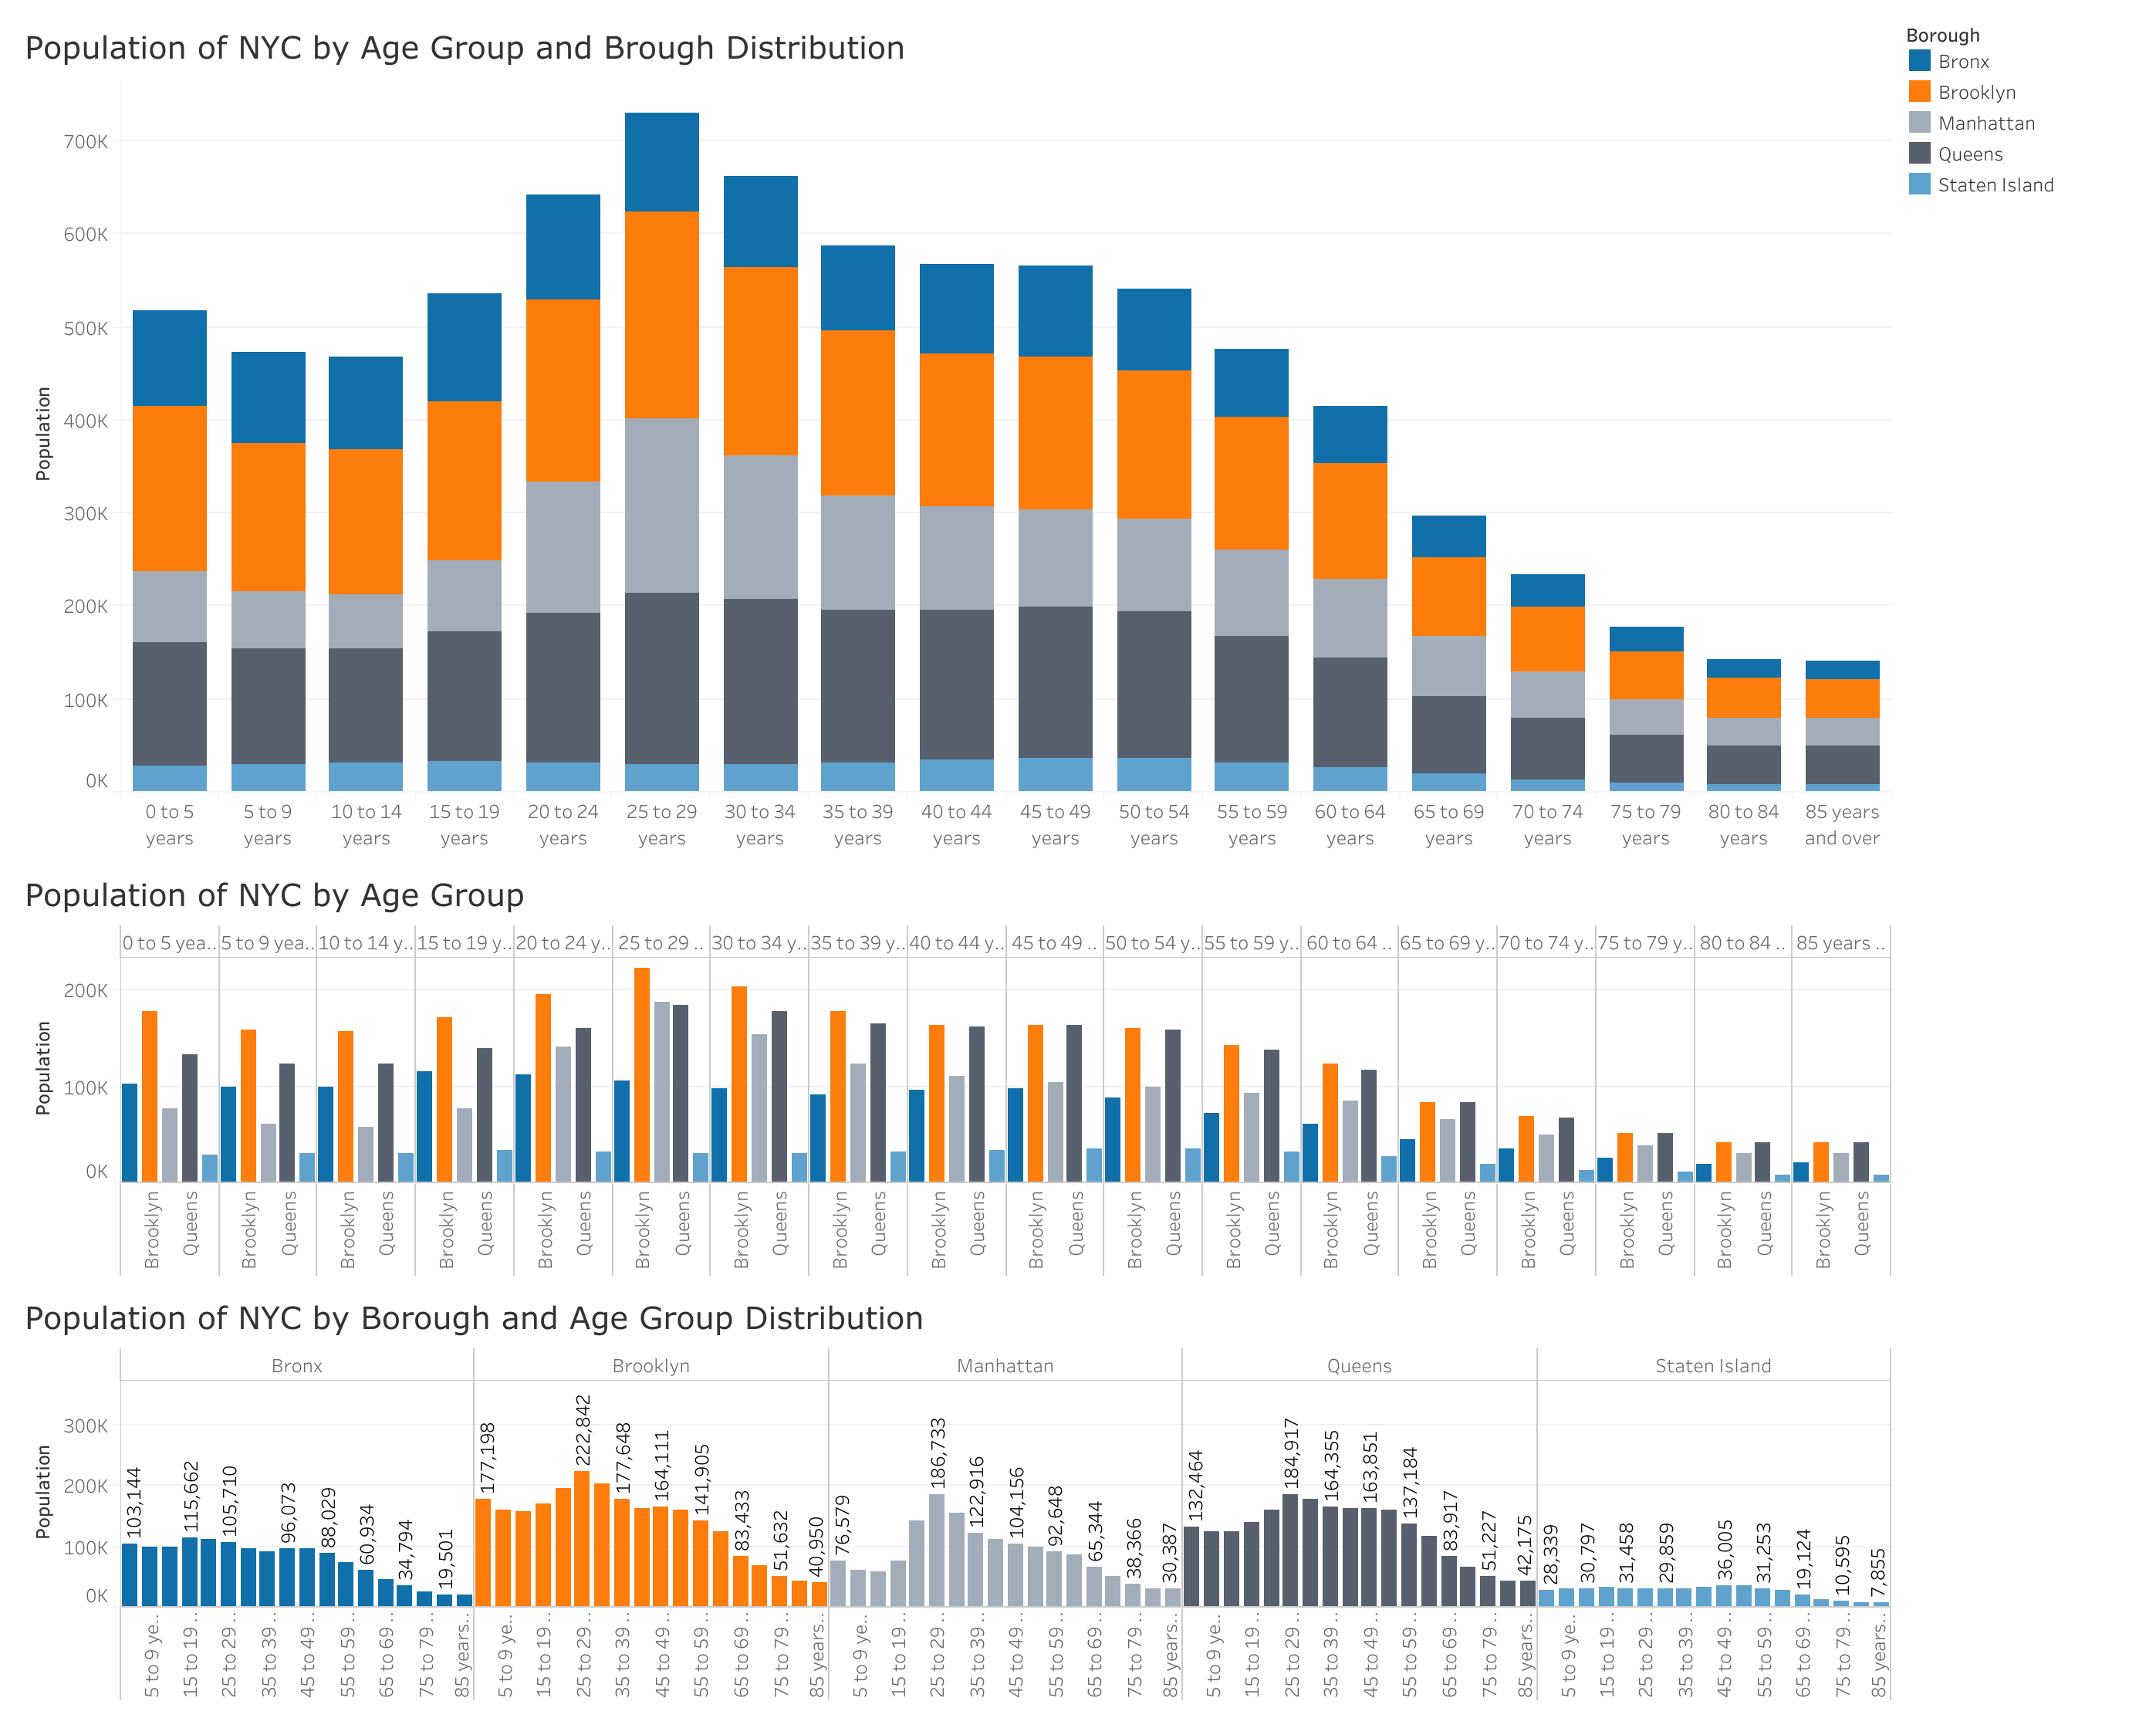 Dashboard: Visualizations of Population of NYC by Age Group and Brough Distribution